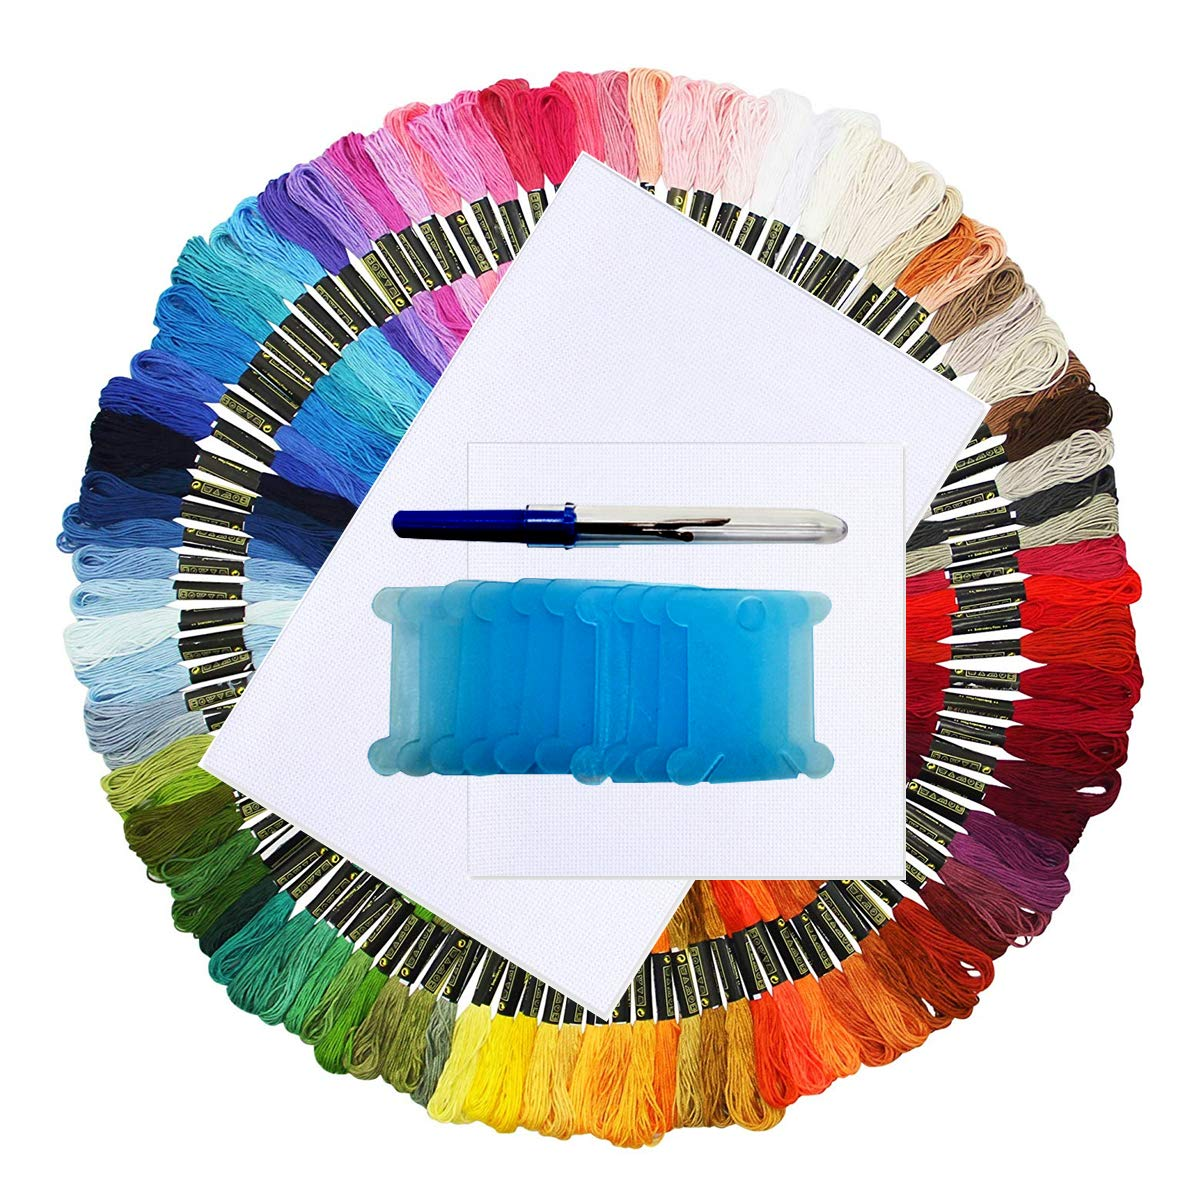 ONLM Embroidery Floss Cross Stitch Threads Rainbow Color 100 Skeins Friendship Bracelets Crafts Floss with 14 Count Aida Cloth 10 Pieces Floss Bobbins Untwist Tool 113 Pieces Embroidery Thread Kits